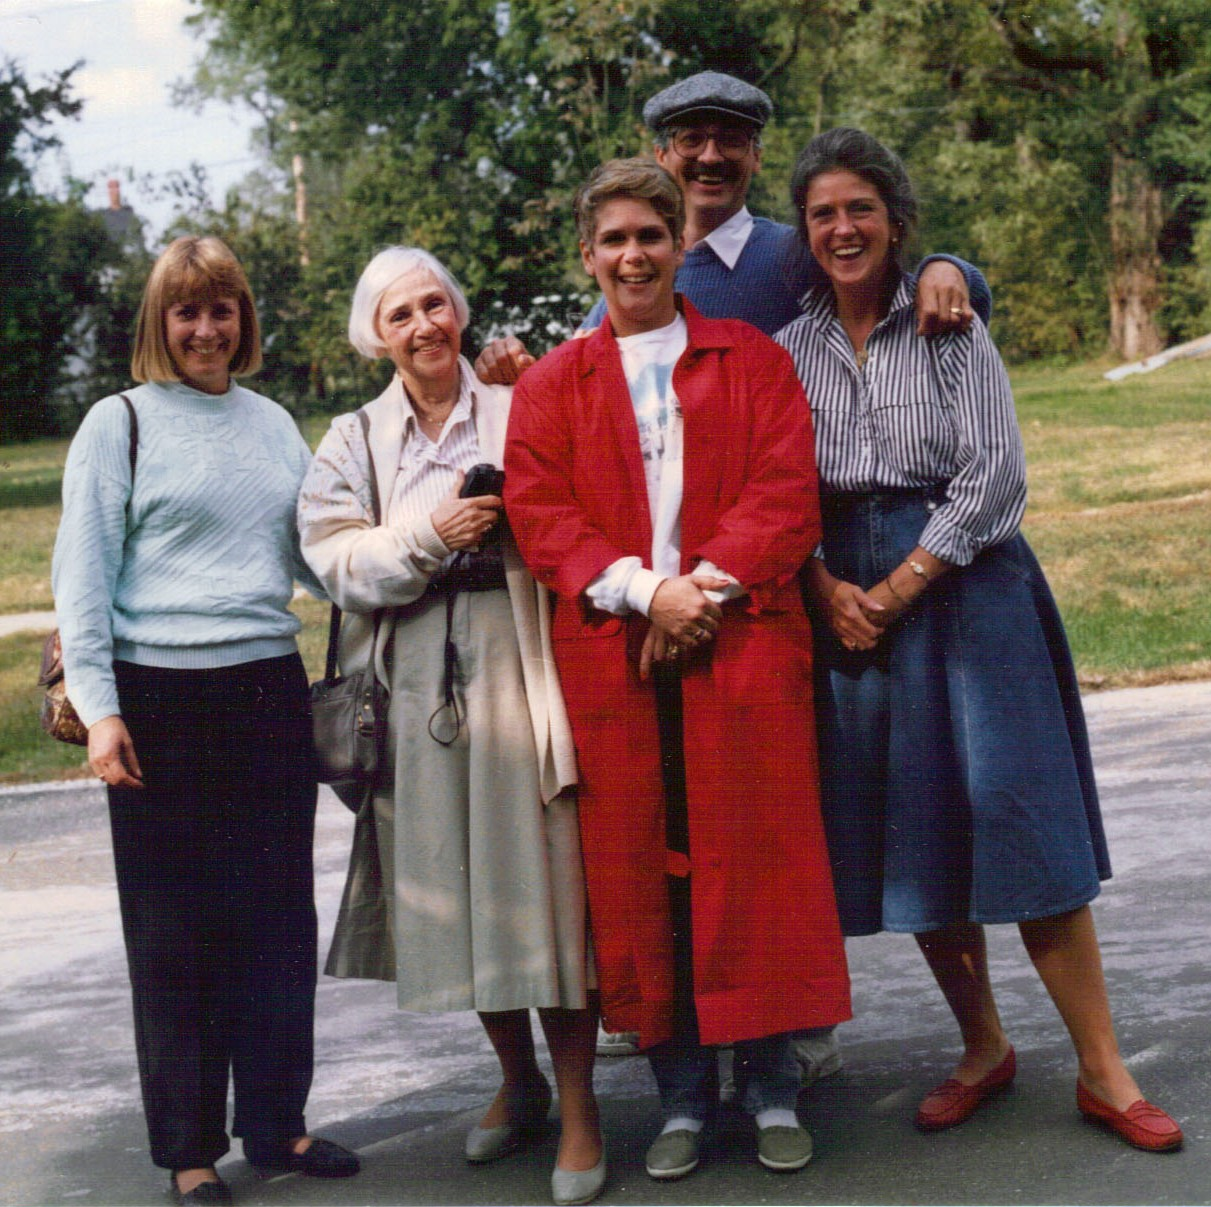 Boonville was revisited in 1990 by my aunt Phoebe, (second from left) when she took my brother Steve, his wife Kay (at left) and her daughters Kristin (in front) and Laura (at right) on a tour of her old home town.